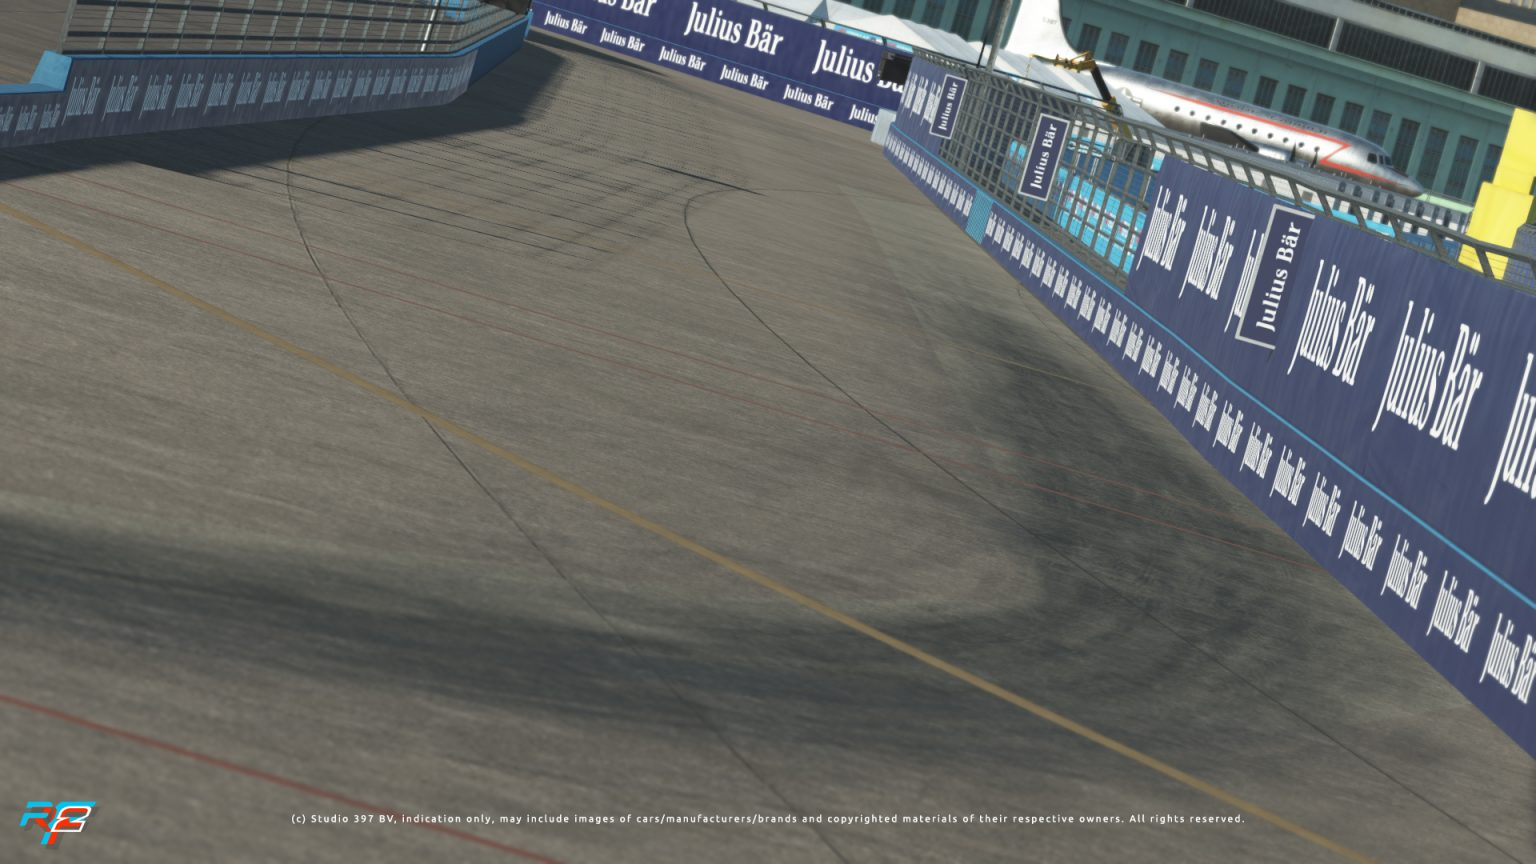 rf2-footer-jpg rF2 | Huge Update Adds Berlin E-Prix, Broadcasting Tools, GFX Updates And More